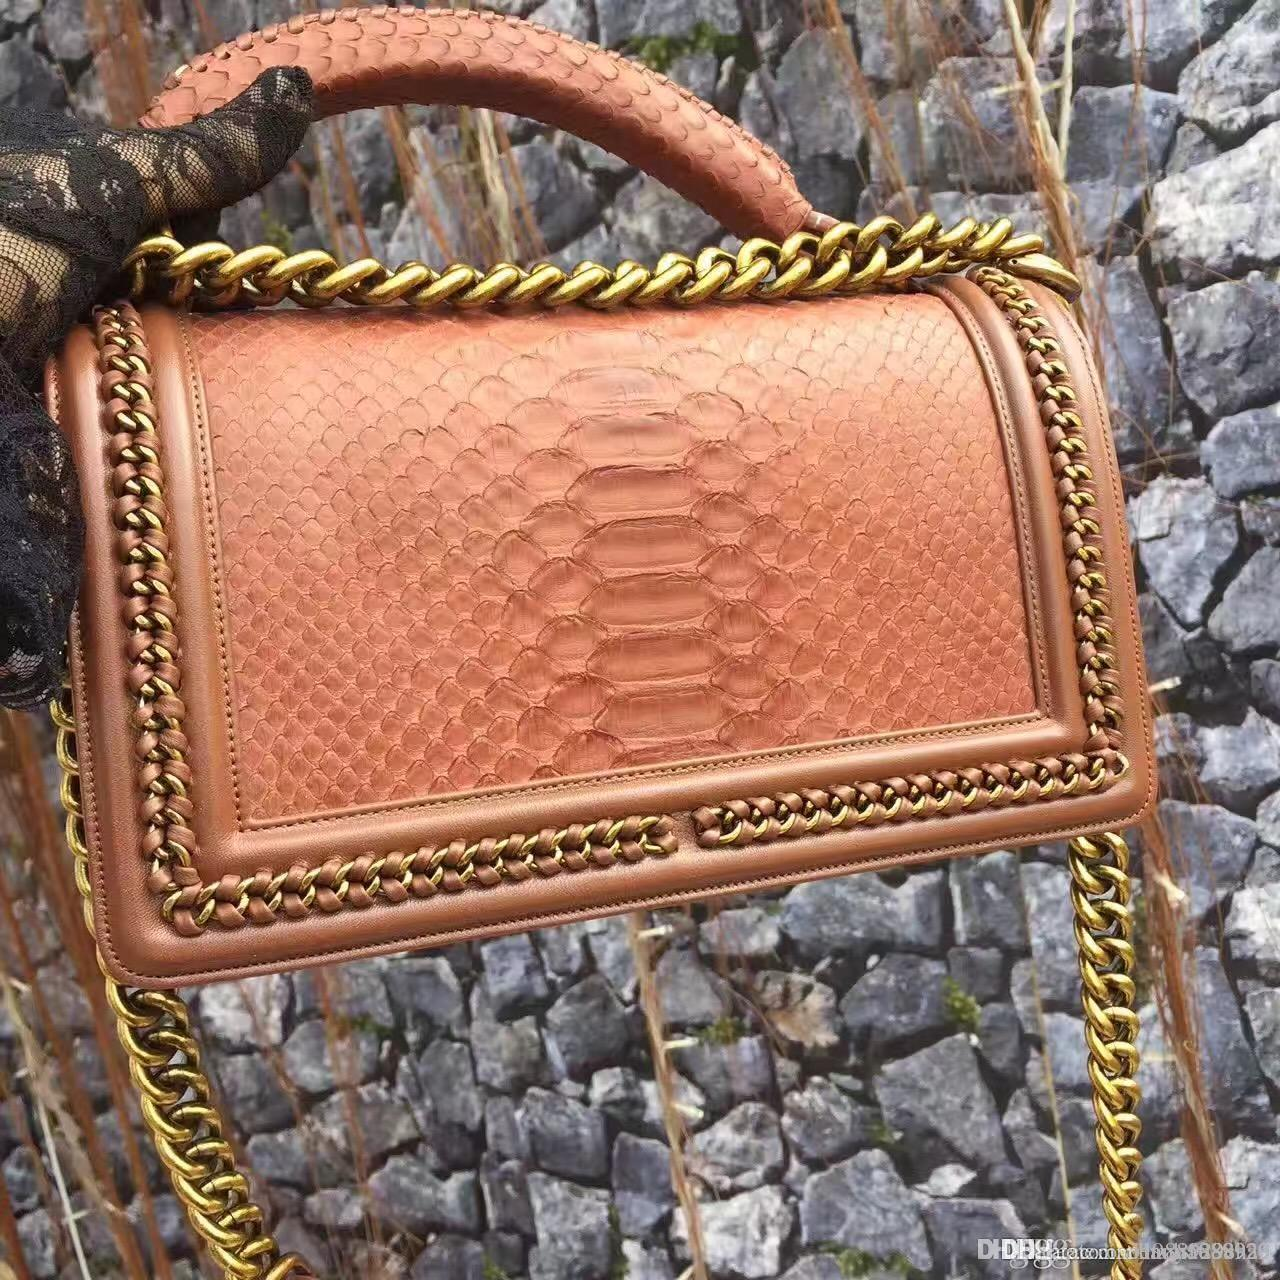 top quality women real python skin handbag, size 25 size 20cm ,original quallity, luxury shoulder bag with DHL and ems free shipping